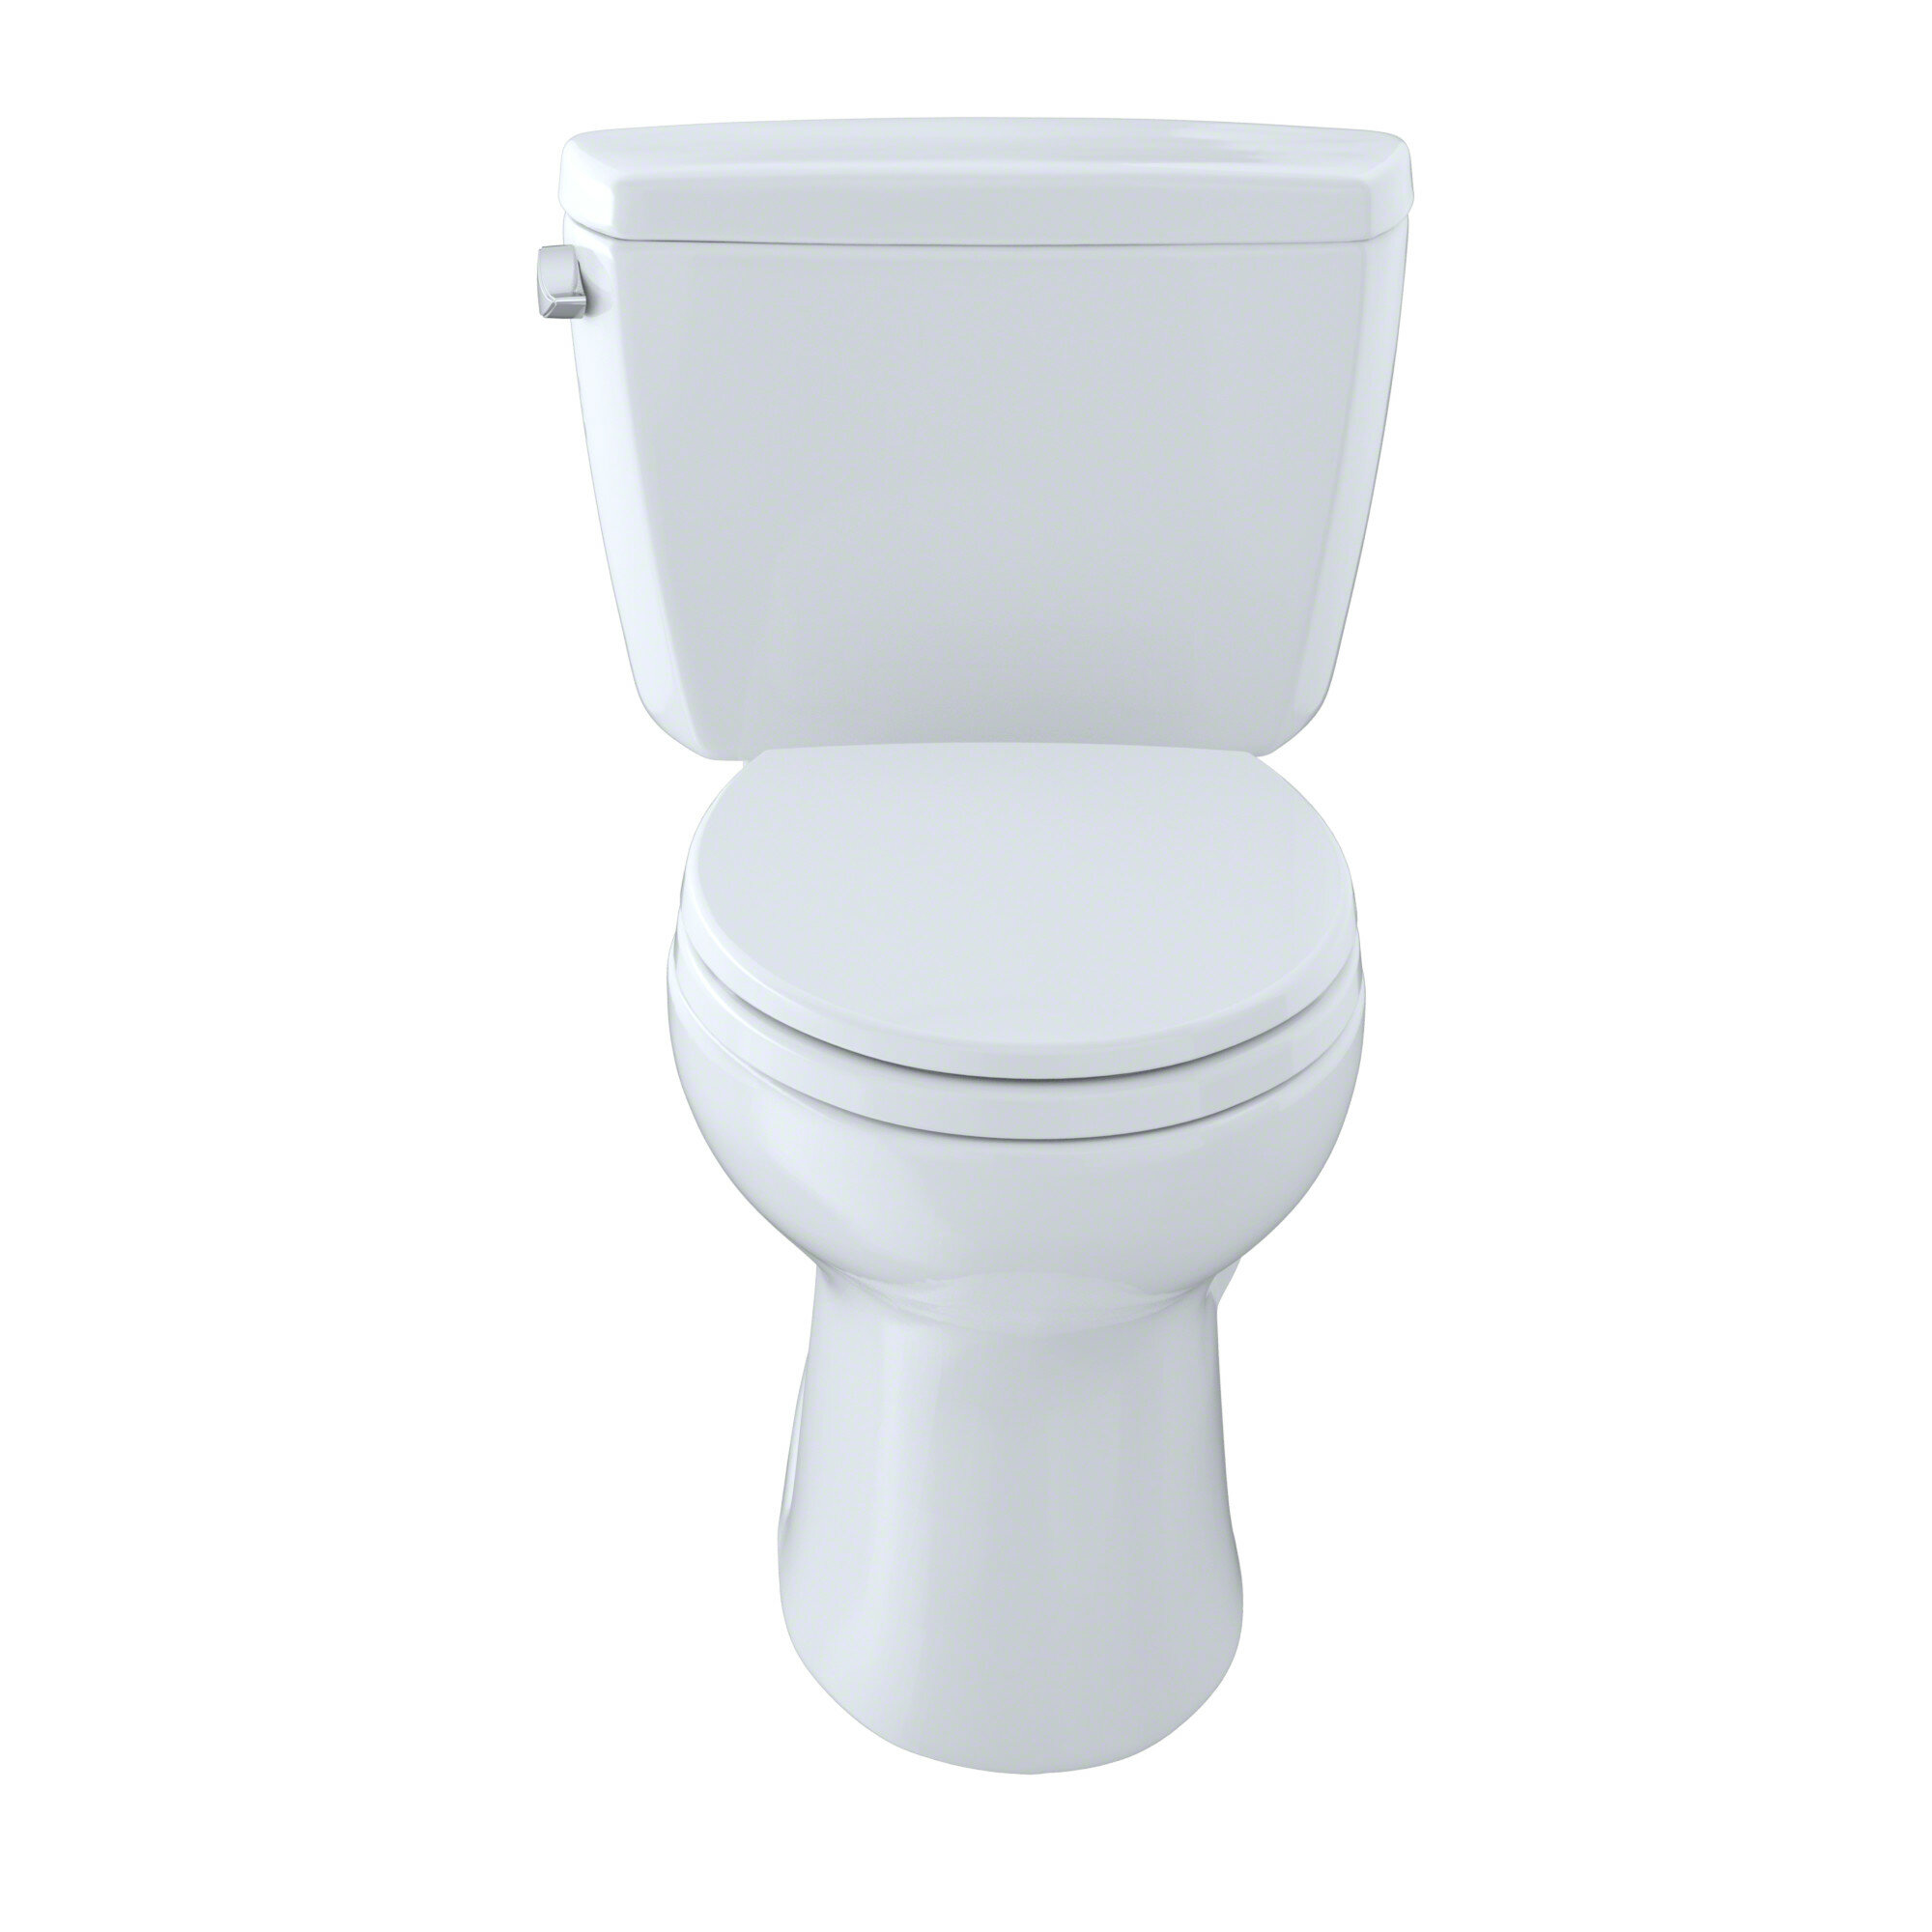 Outstanding Drake Eco 1 28 Gpf Water Efficient Elongated Two Piece Toilet With High Efficiency Flush Seat Not Included Ocoug Best Dining Table And Chair Ideas Images Ocougorg